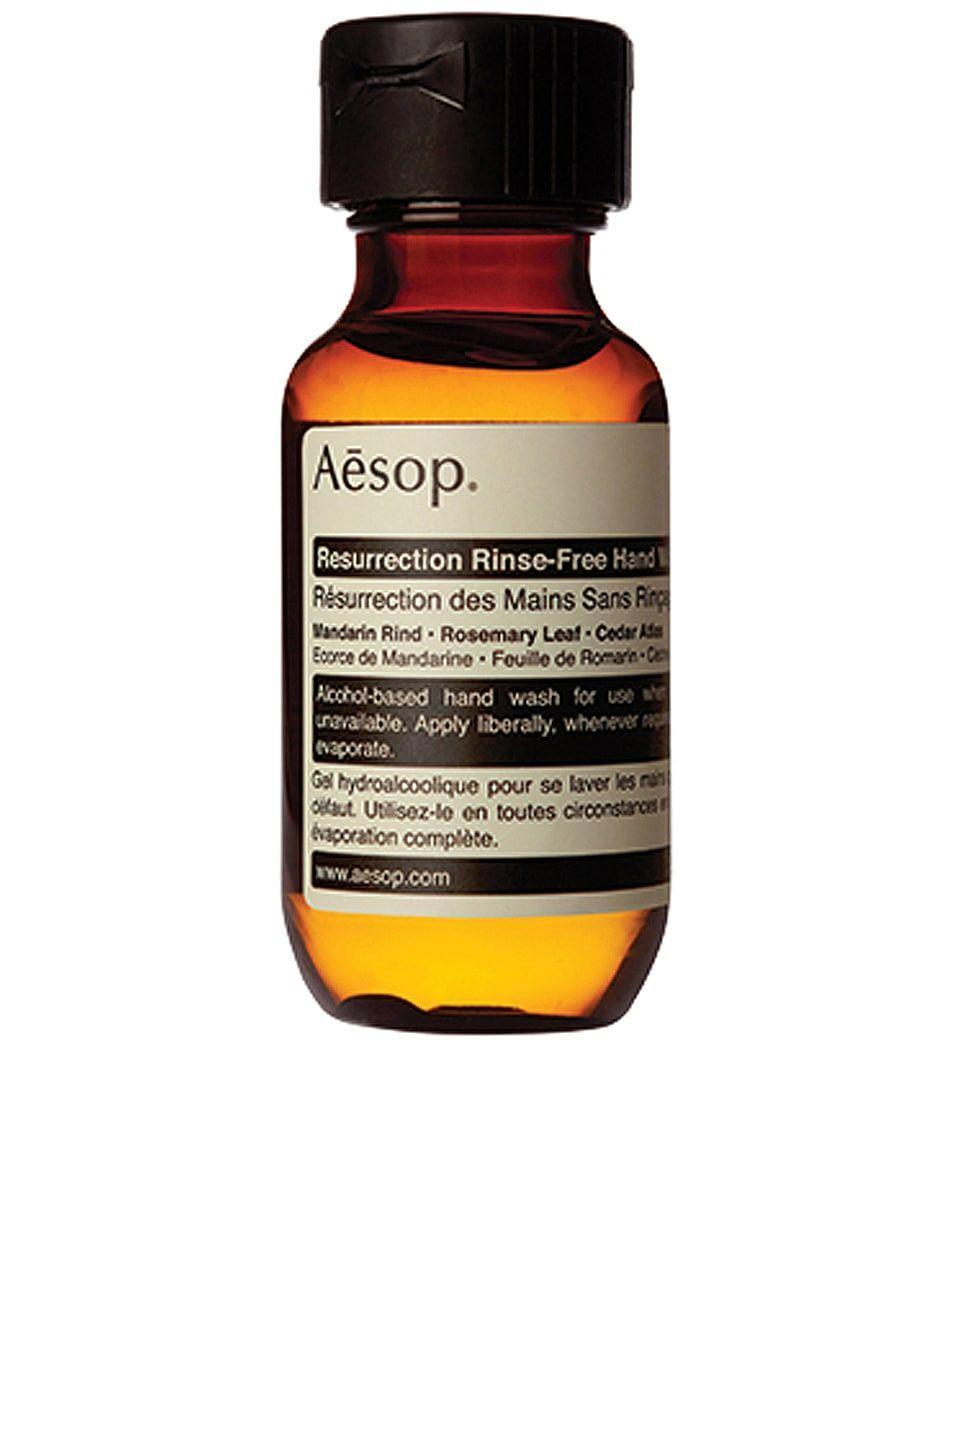 """<p><strong>Aesop</strong></p><p>revolve.com</p><p><strong>$10.00</strong></p><p><a href=""""https://go.redirectingat.com?id=74968X1596630&url=https%3A%2F%2Fwww.revolve.com%2Fdp%2FAESR-WU34%2F&sref=https%3A%2F%2Fwww.veranda.com%2Ftravel%2Fg37080014%2Ftravel-essentials%2F"""" rel=""""nofollow noopener"""" target=""""_blank"""" data-ylk=""""slk:Shop Now"""" class=""""link rapid-noclick-resp"""">Shop Now</a></p><p>Luxuriously smooth - so much so that it almost feels like a hand lotion - and a heavenly smell not even close to hand sanitizer makes this hand rinse the loveliest way to stay clean in the airport. </p>"""